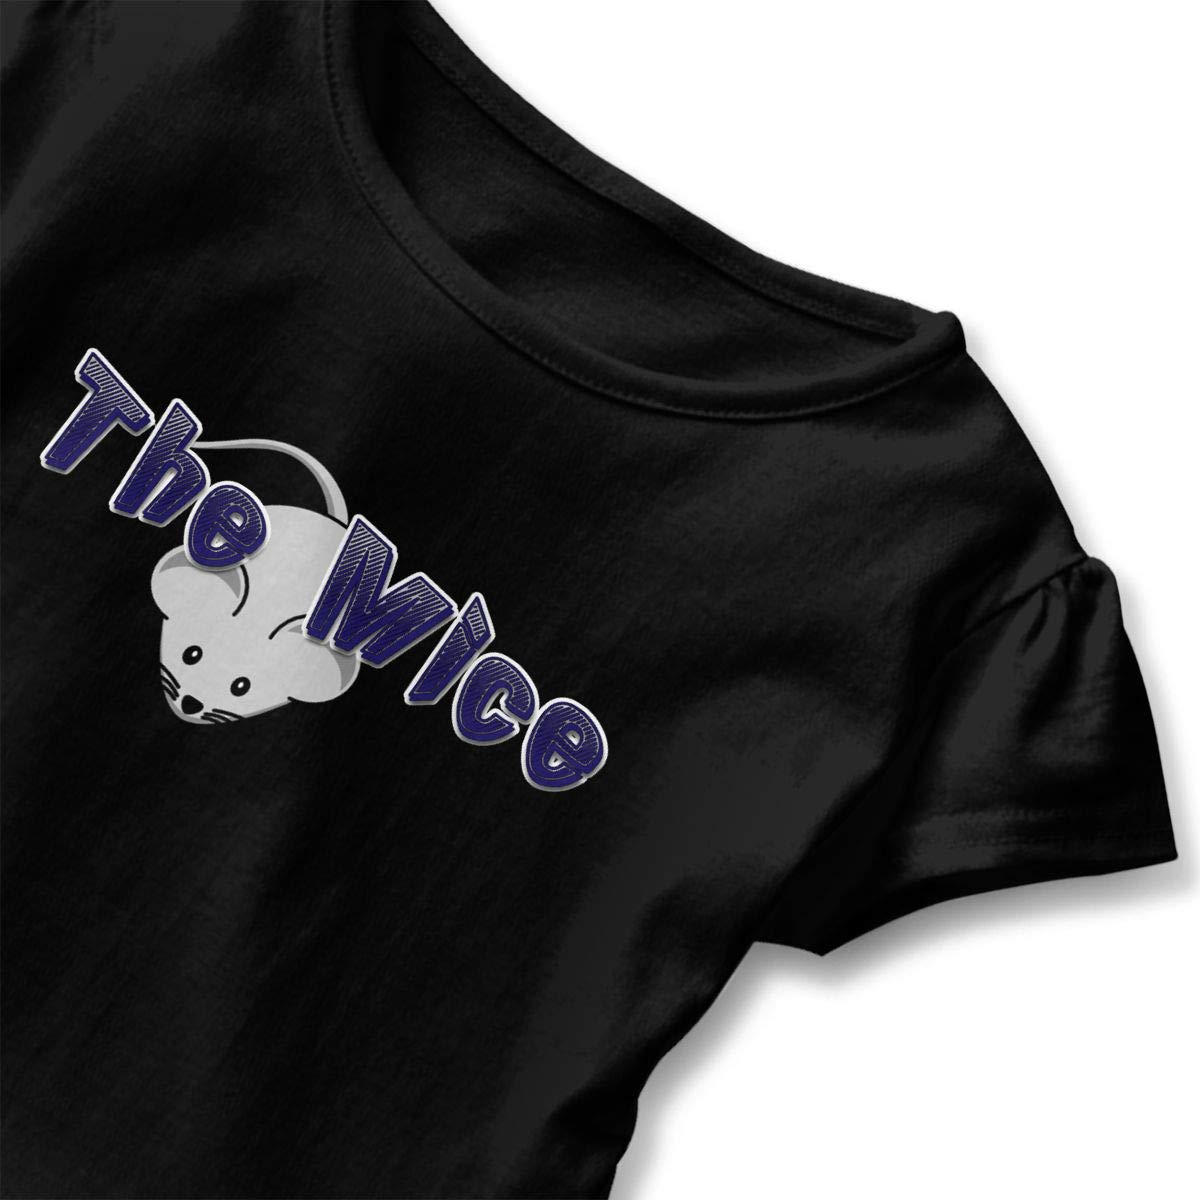 JVNSS The Mice Shirt Soft Toddler Girls Flounced T Shirts Graphic T-Shirt for 2-6T Baby Girls